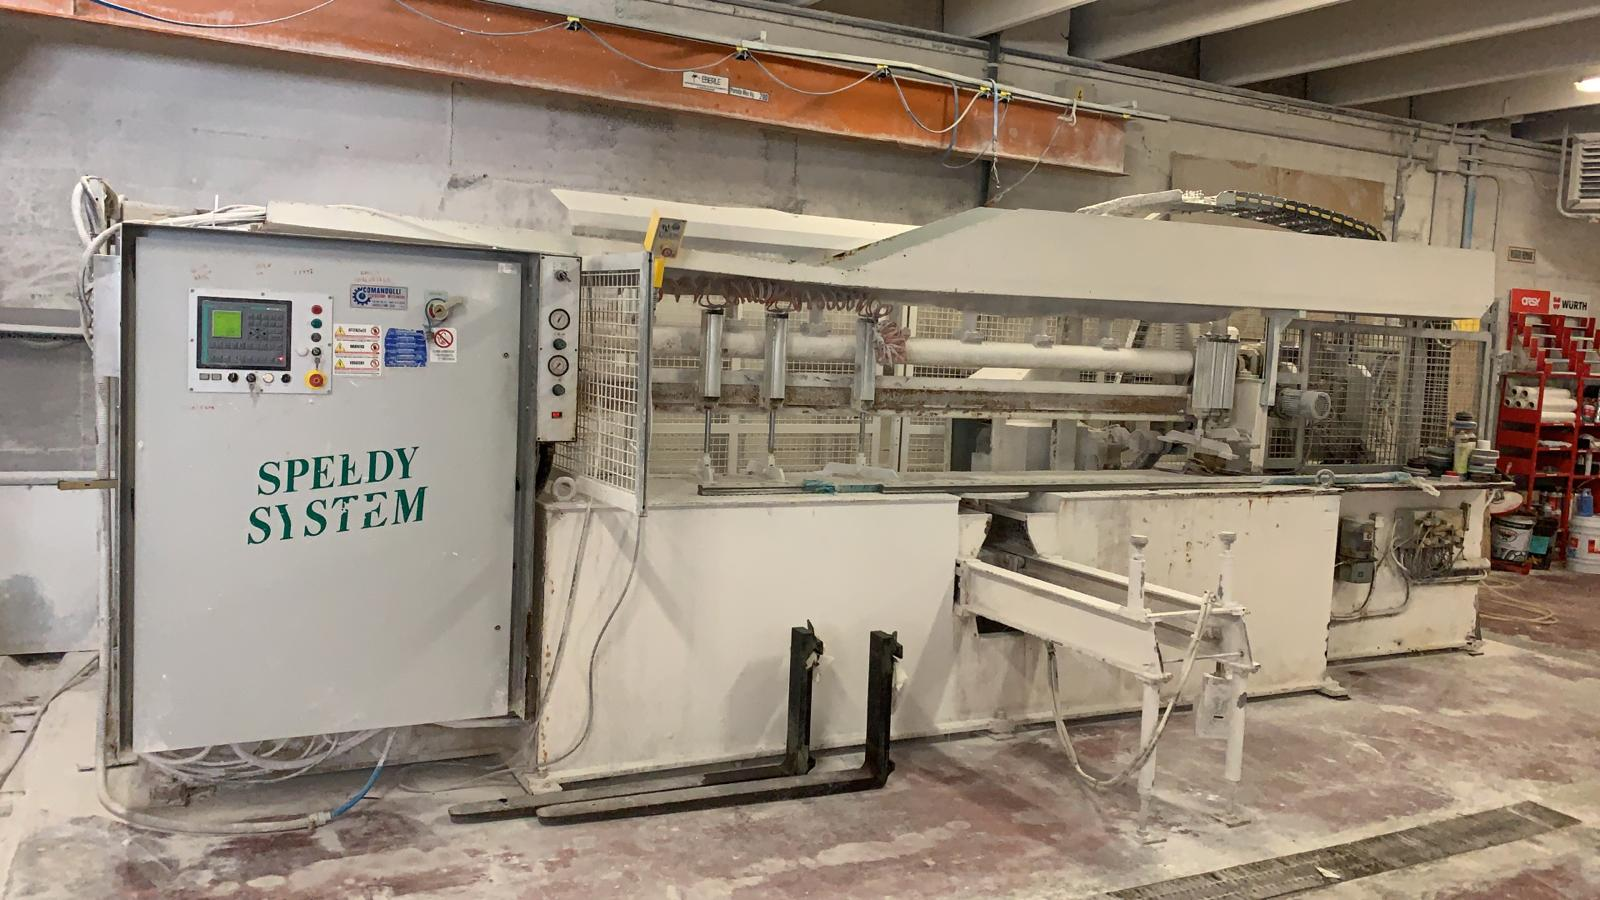 Used edge polisher with bench - Comandulli Speedy System - Frontal View